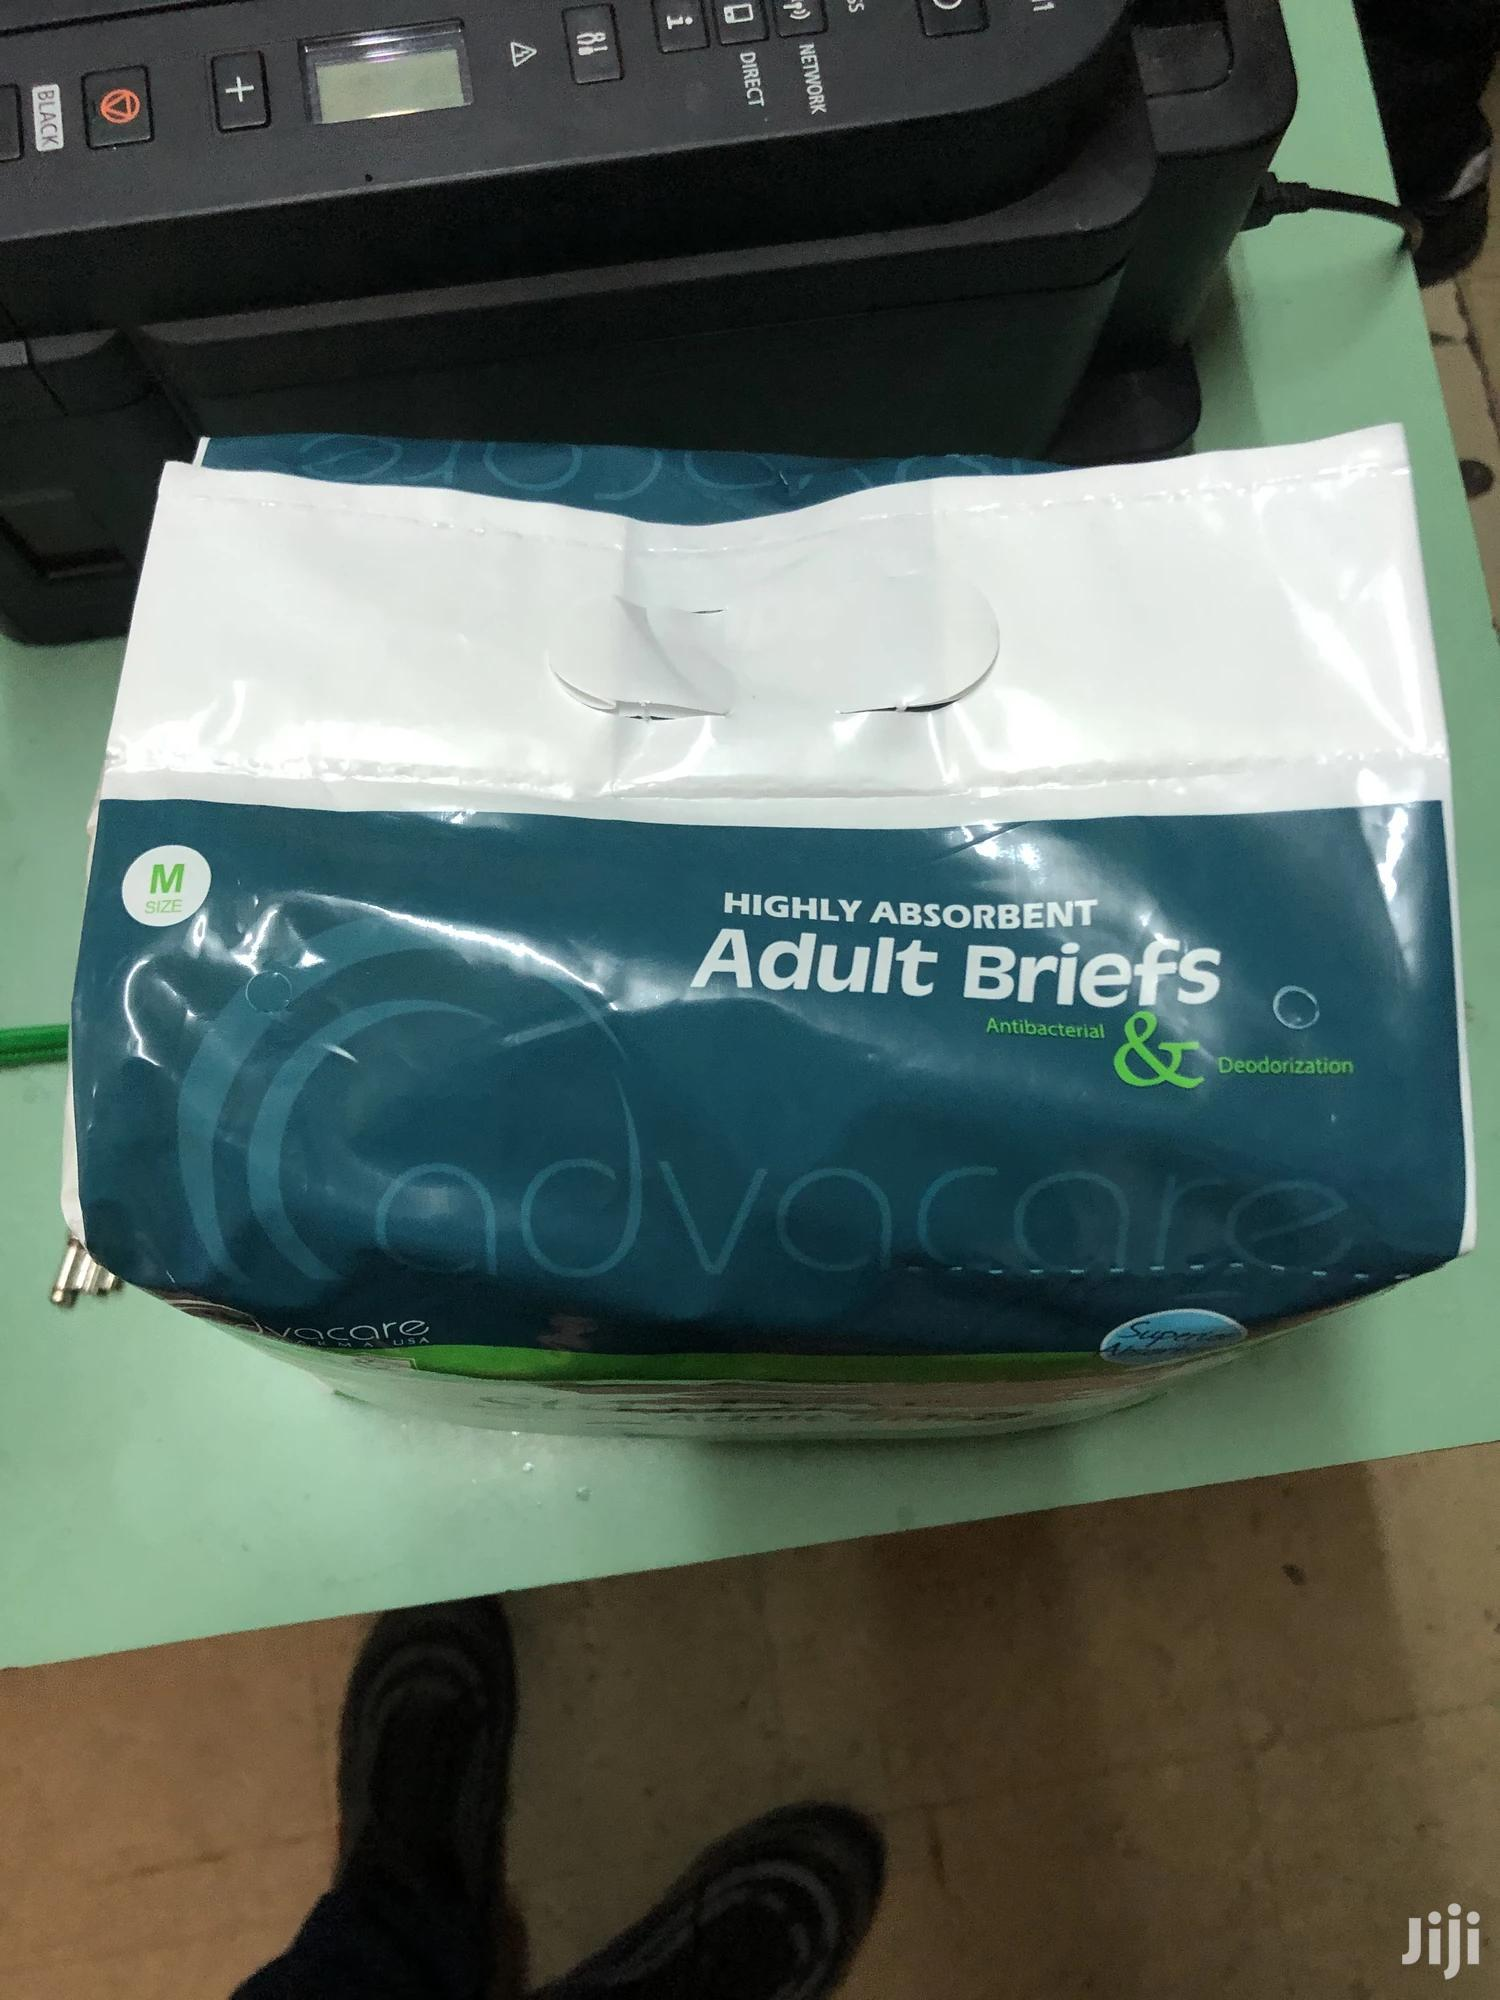 Adult Diapers (Briefs) | Medical Equipment for sale in Nairobi Central, Nairobi, Kenya